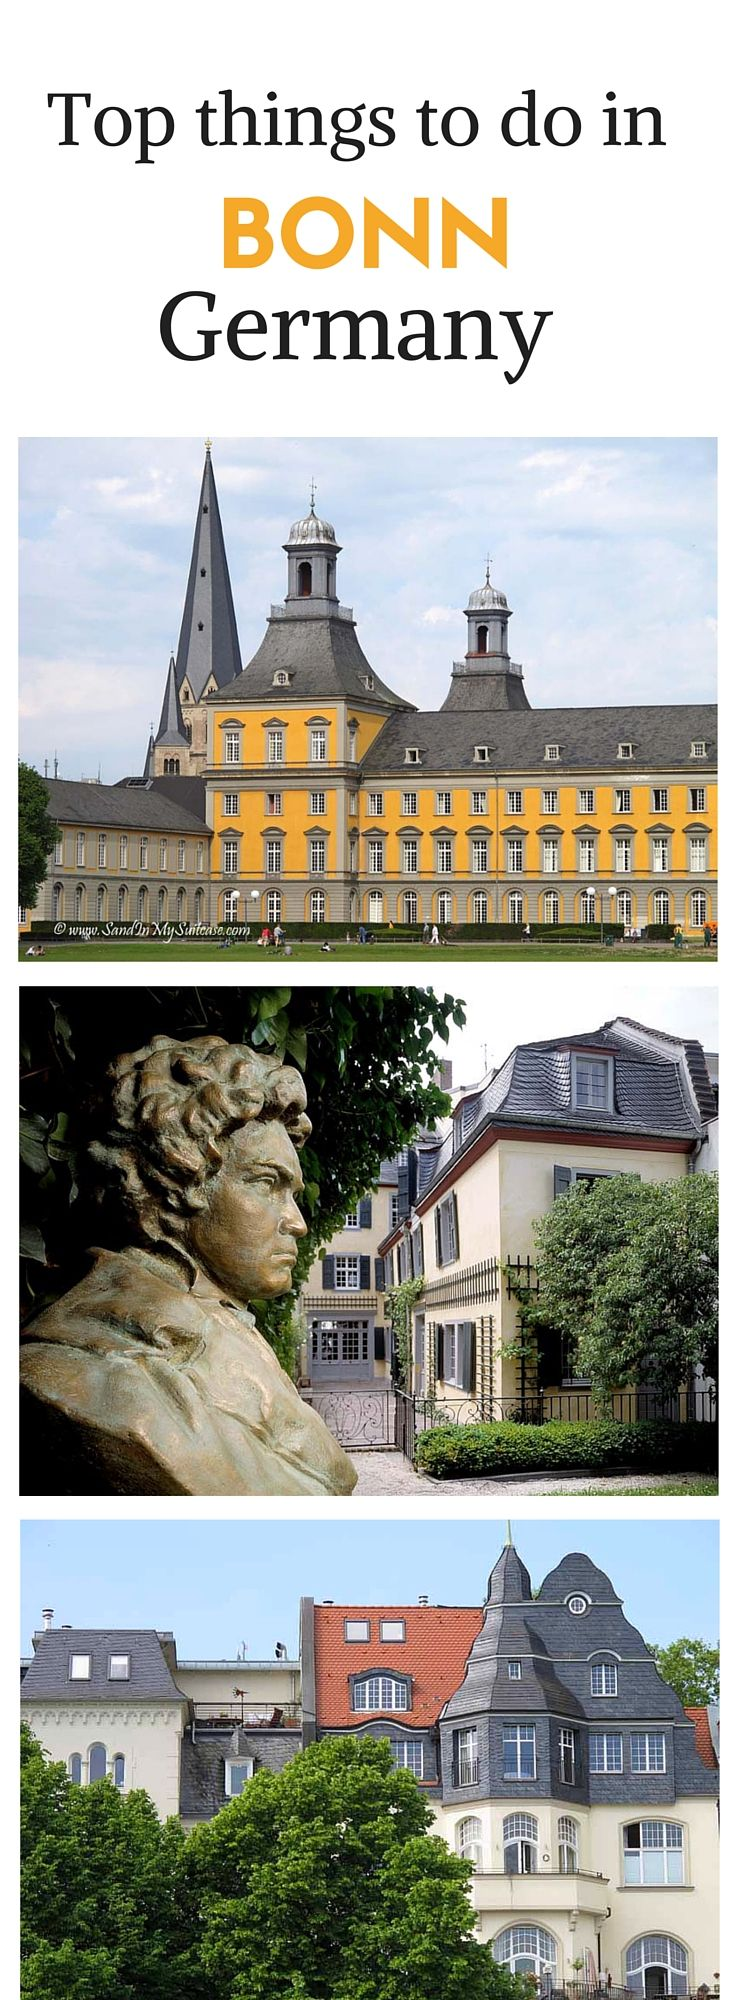 BONN, Germany | Bonn doesn't get the same ink as more famous German cities (like Berlin). But there are lovely things to do in Bonn. Like visiting the house where Beethoven was born. And taking a scenic Rhine cruise to Konigswinter to see the medieval castle there. Give Bonn a try!